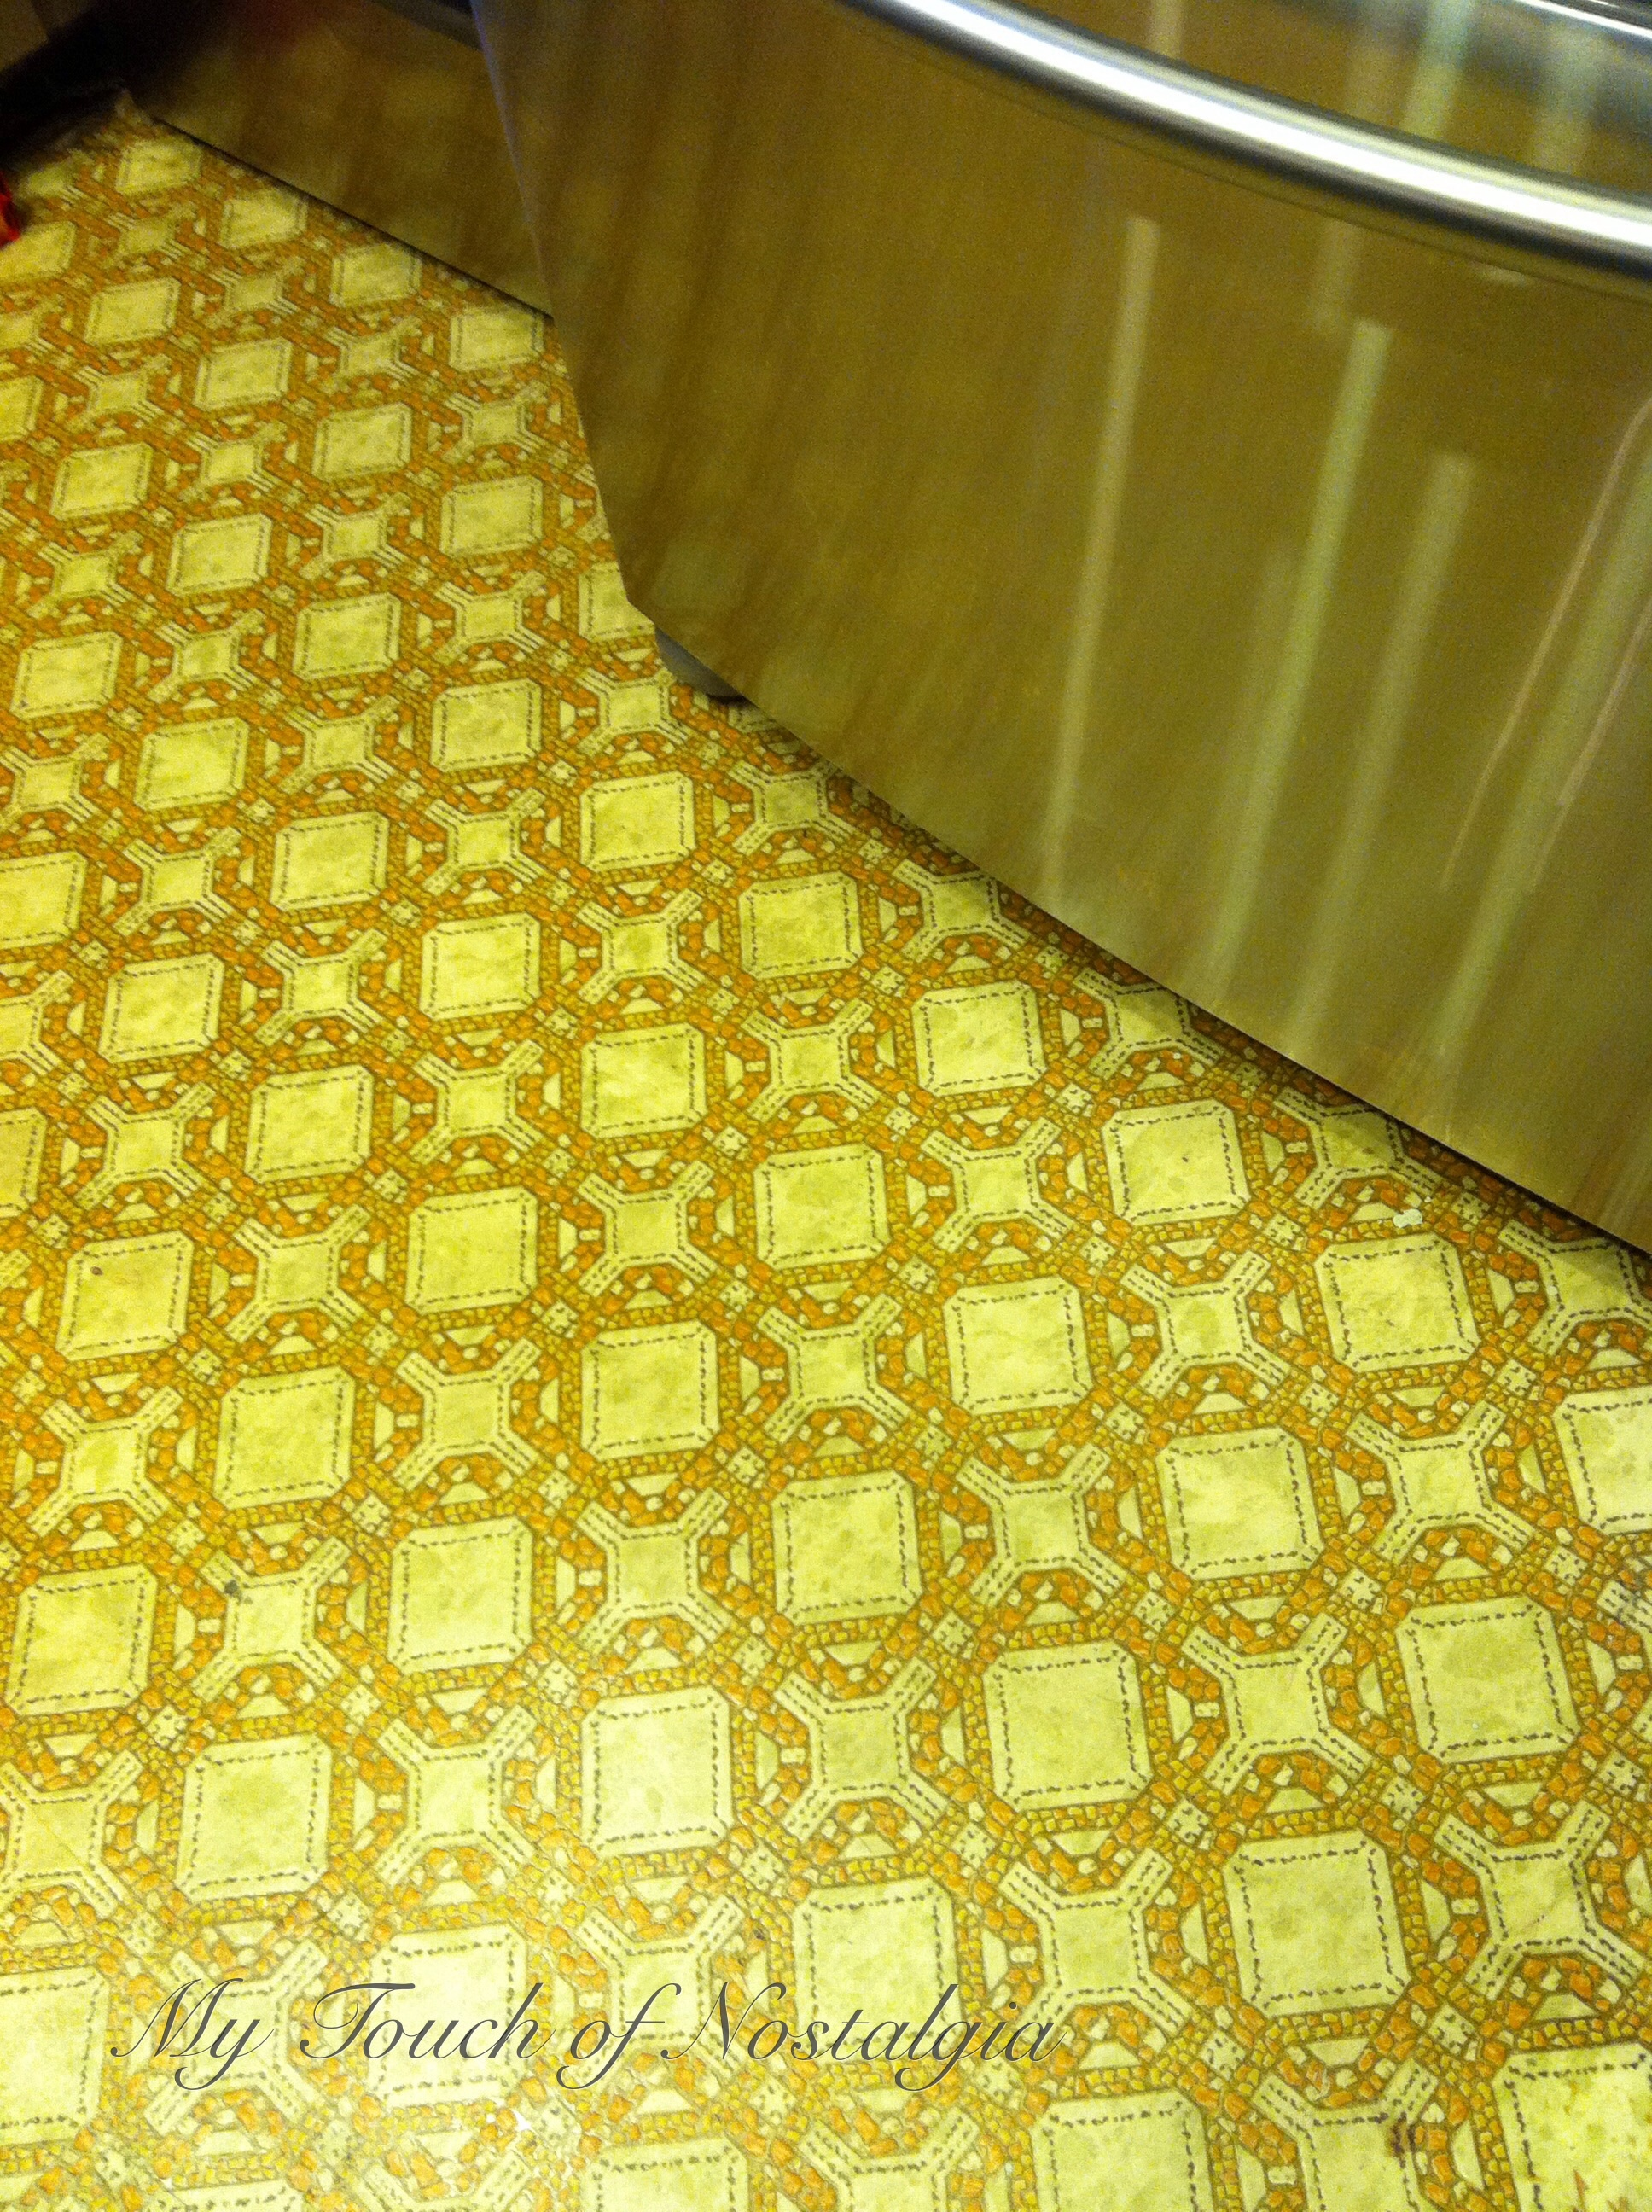 Temporary Kitchen Flooring Floor My Touch Of Nostalgia